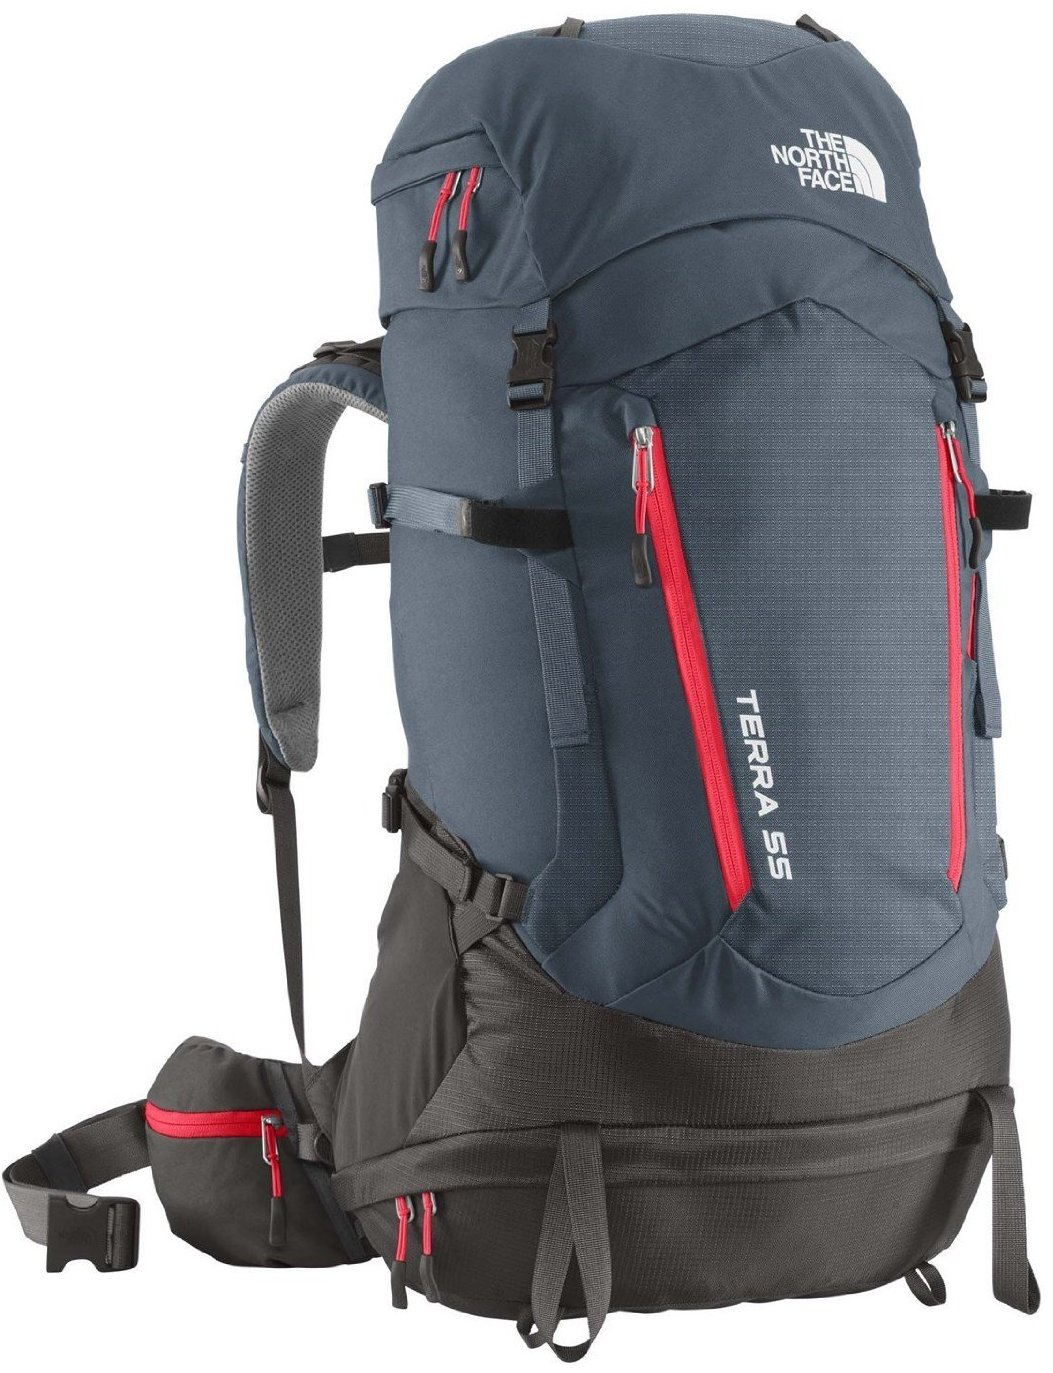 Backpacks For Hiking C9gQGmvF